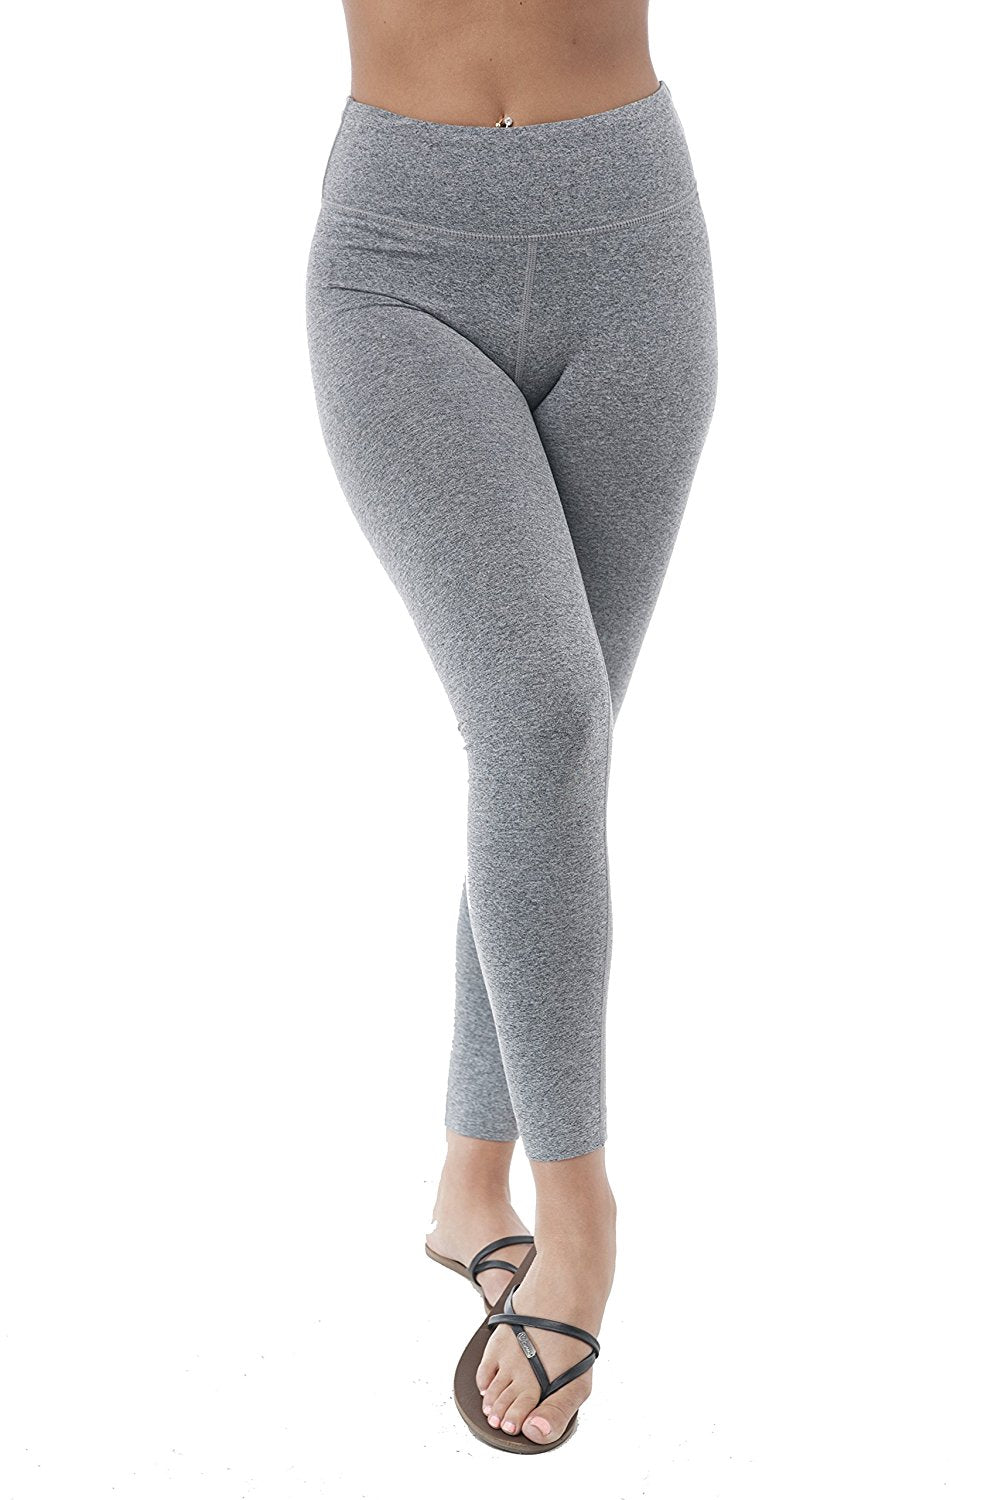 Khanomak Long Athletic Active Wear Gym Basic Yoga Work Out Pants Leggings